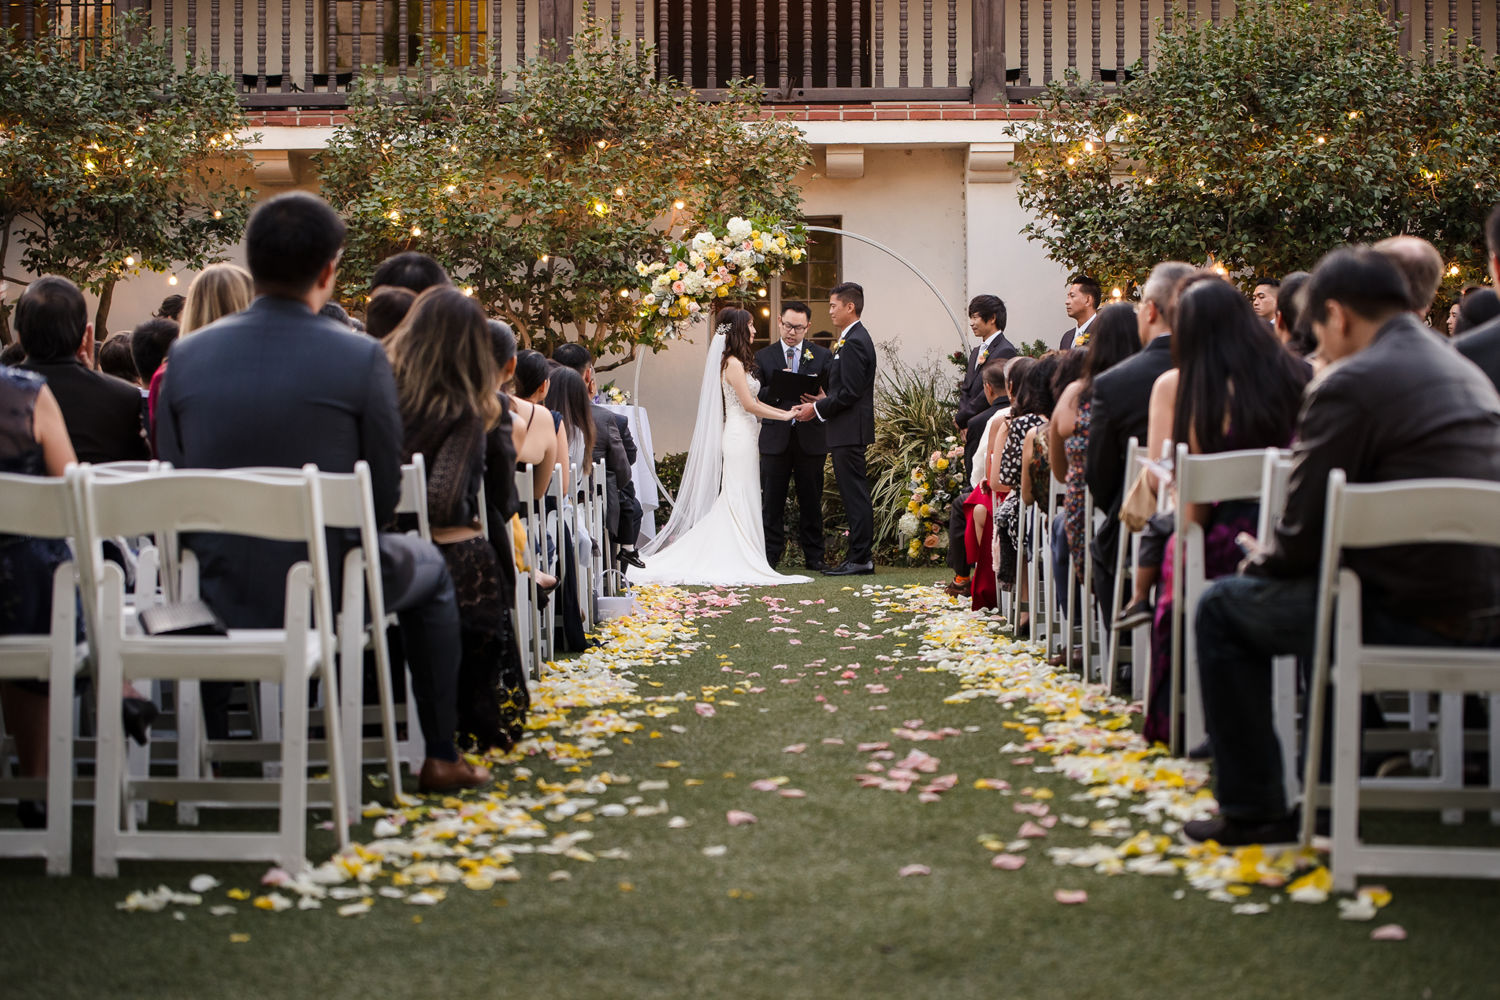 2Bowers Museum Santa Ana Wedding Ceremony